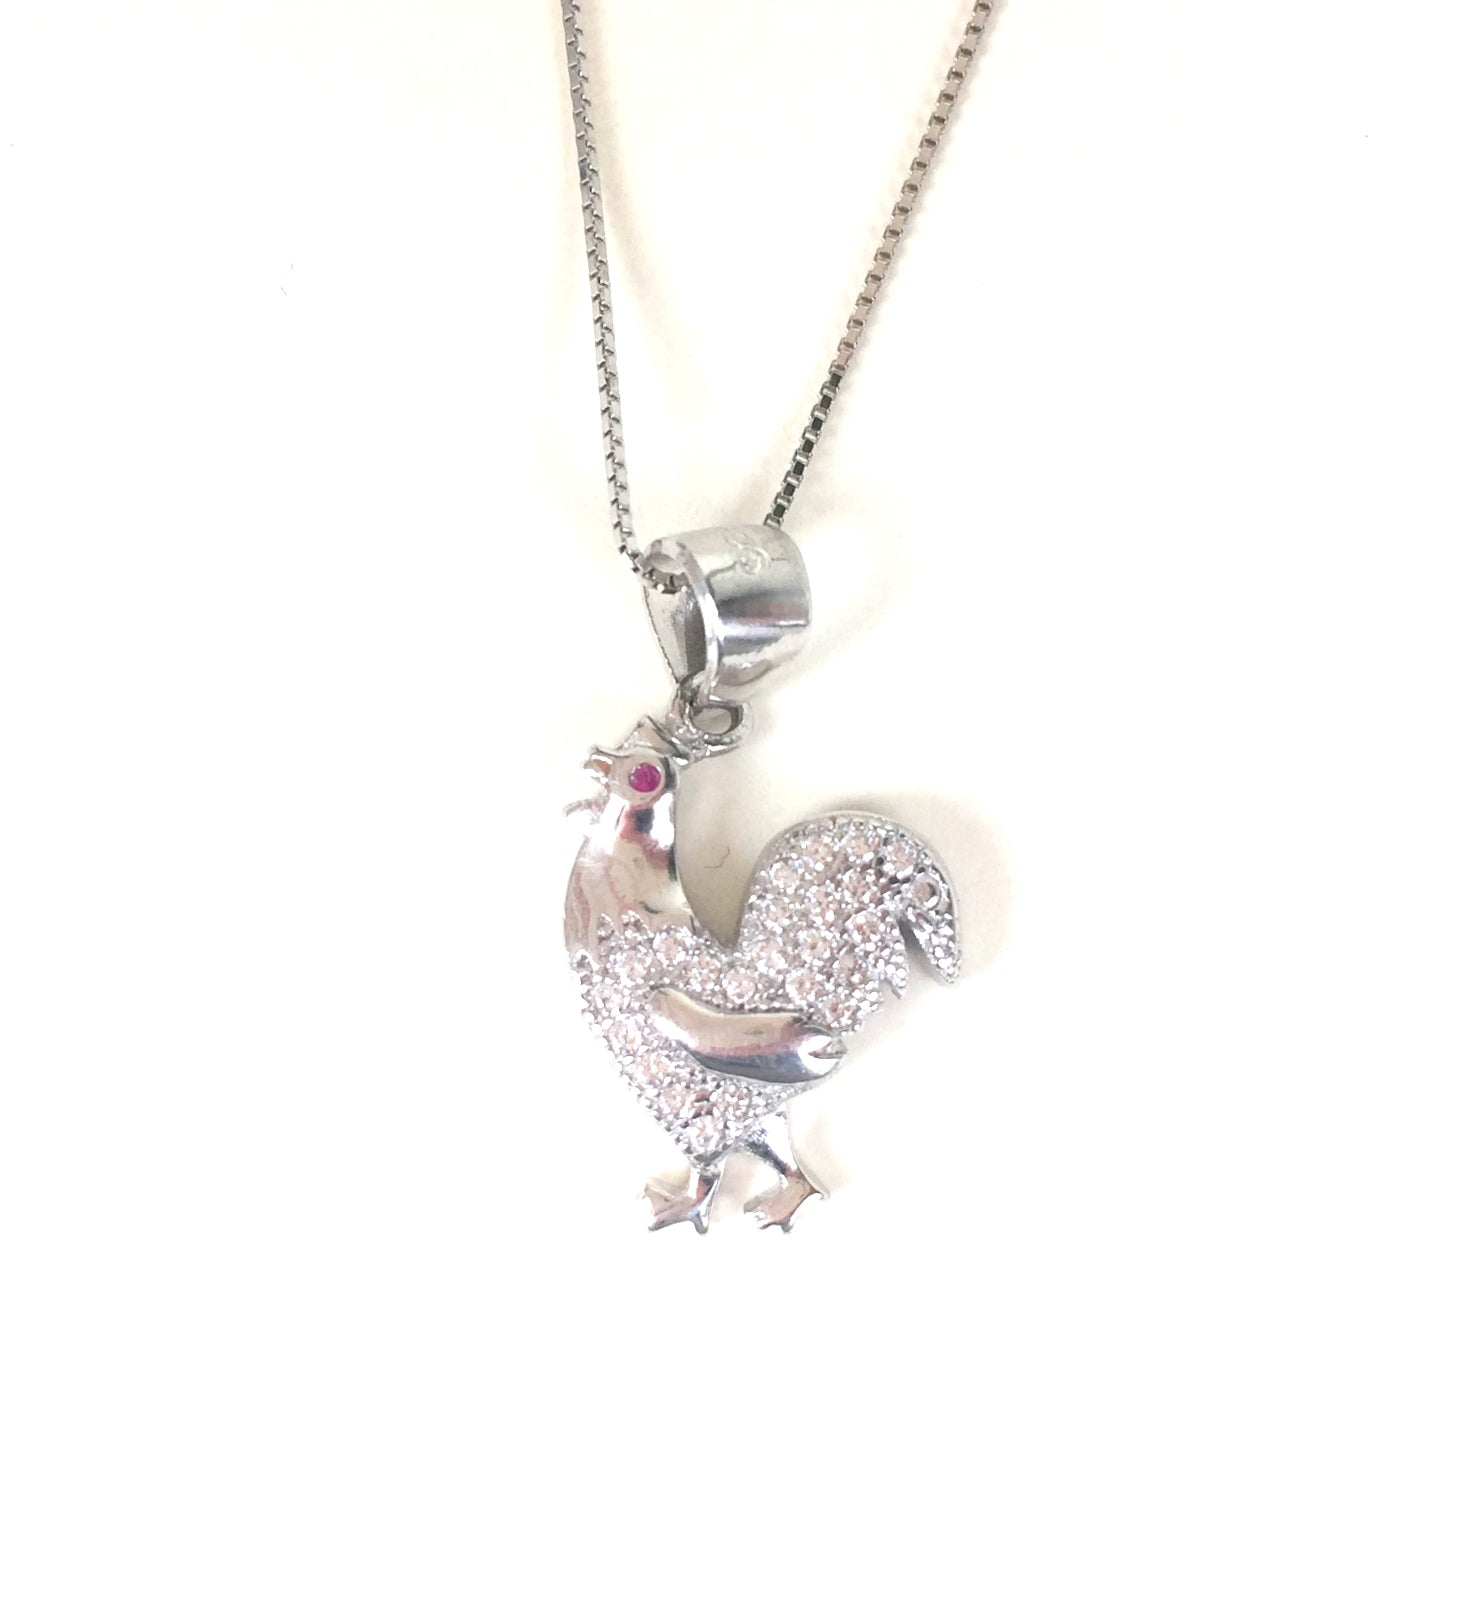 ROOSTER PAVE CZ STERLING SILVER NECKLACE